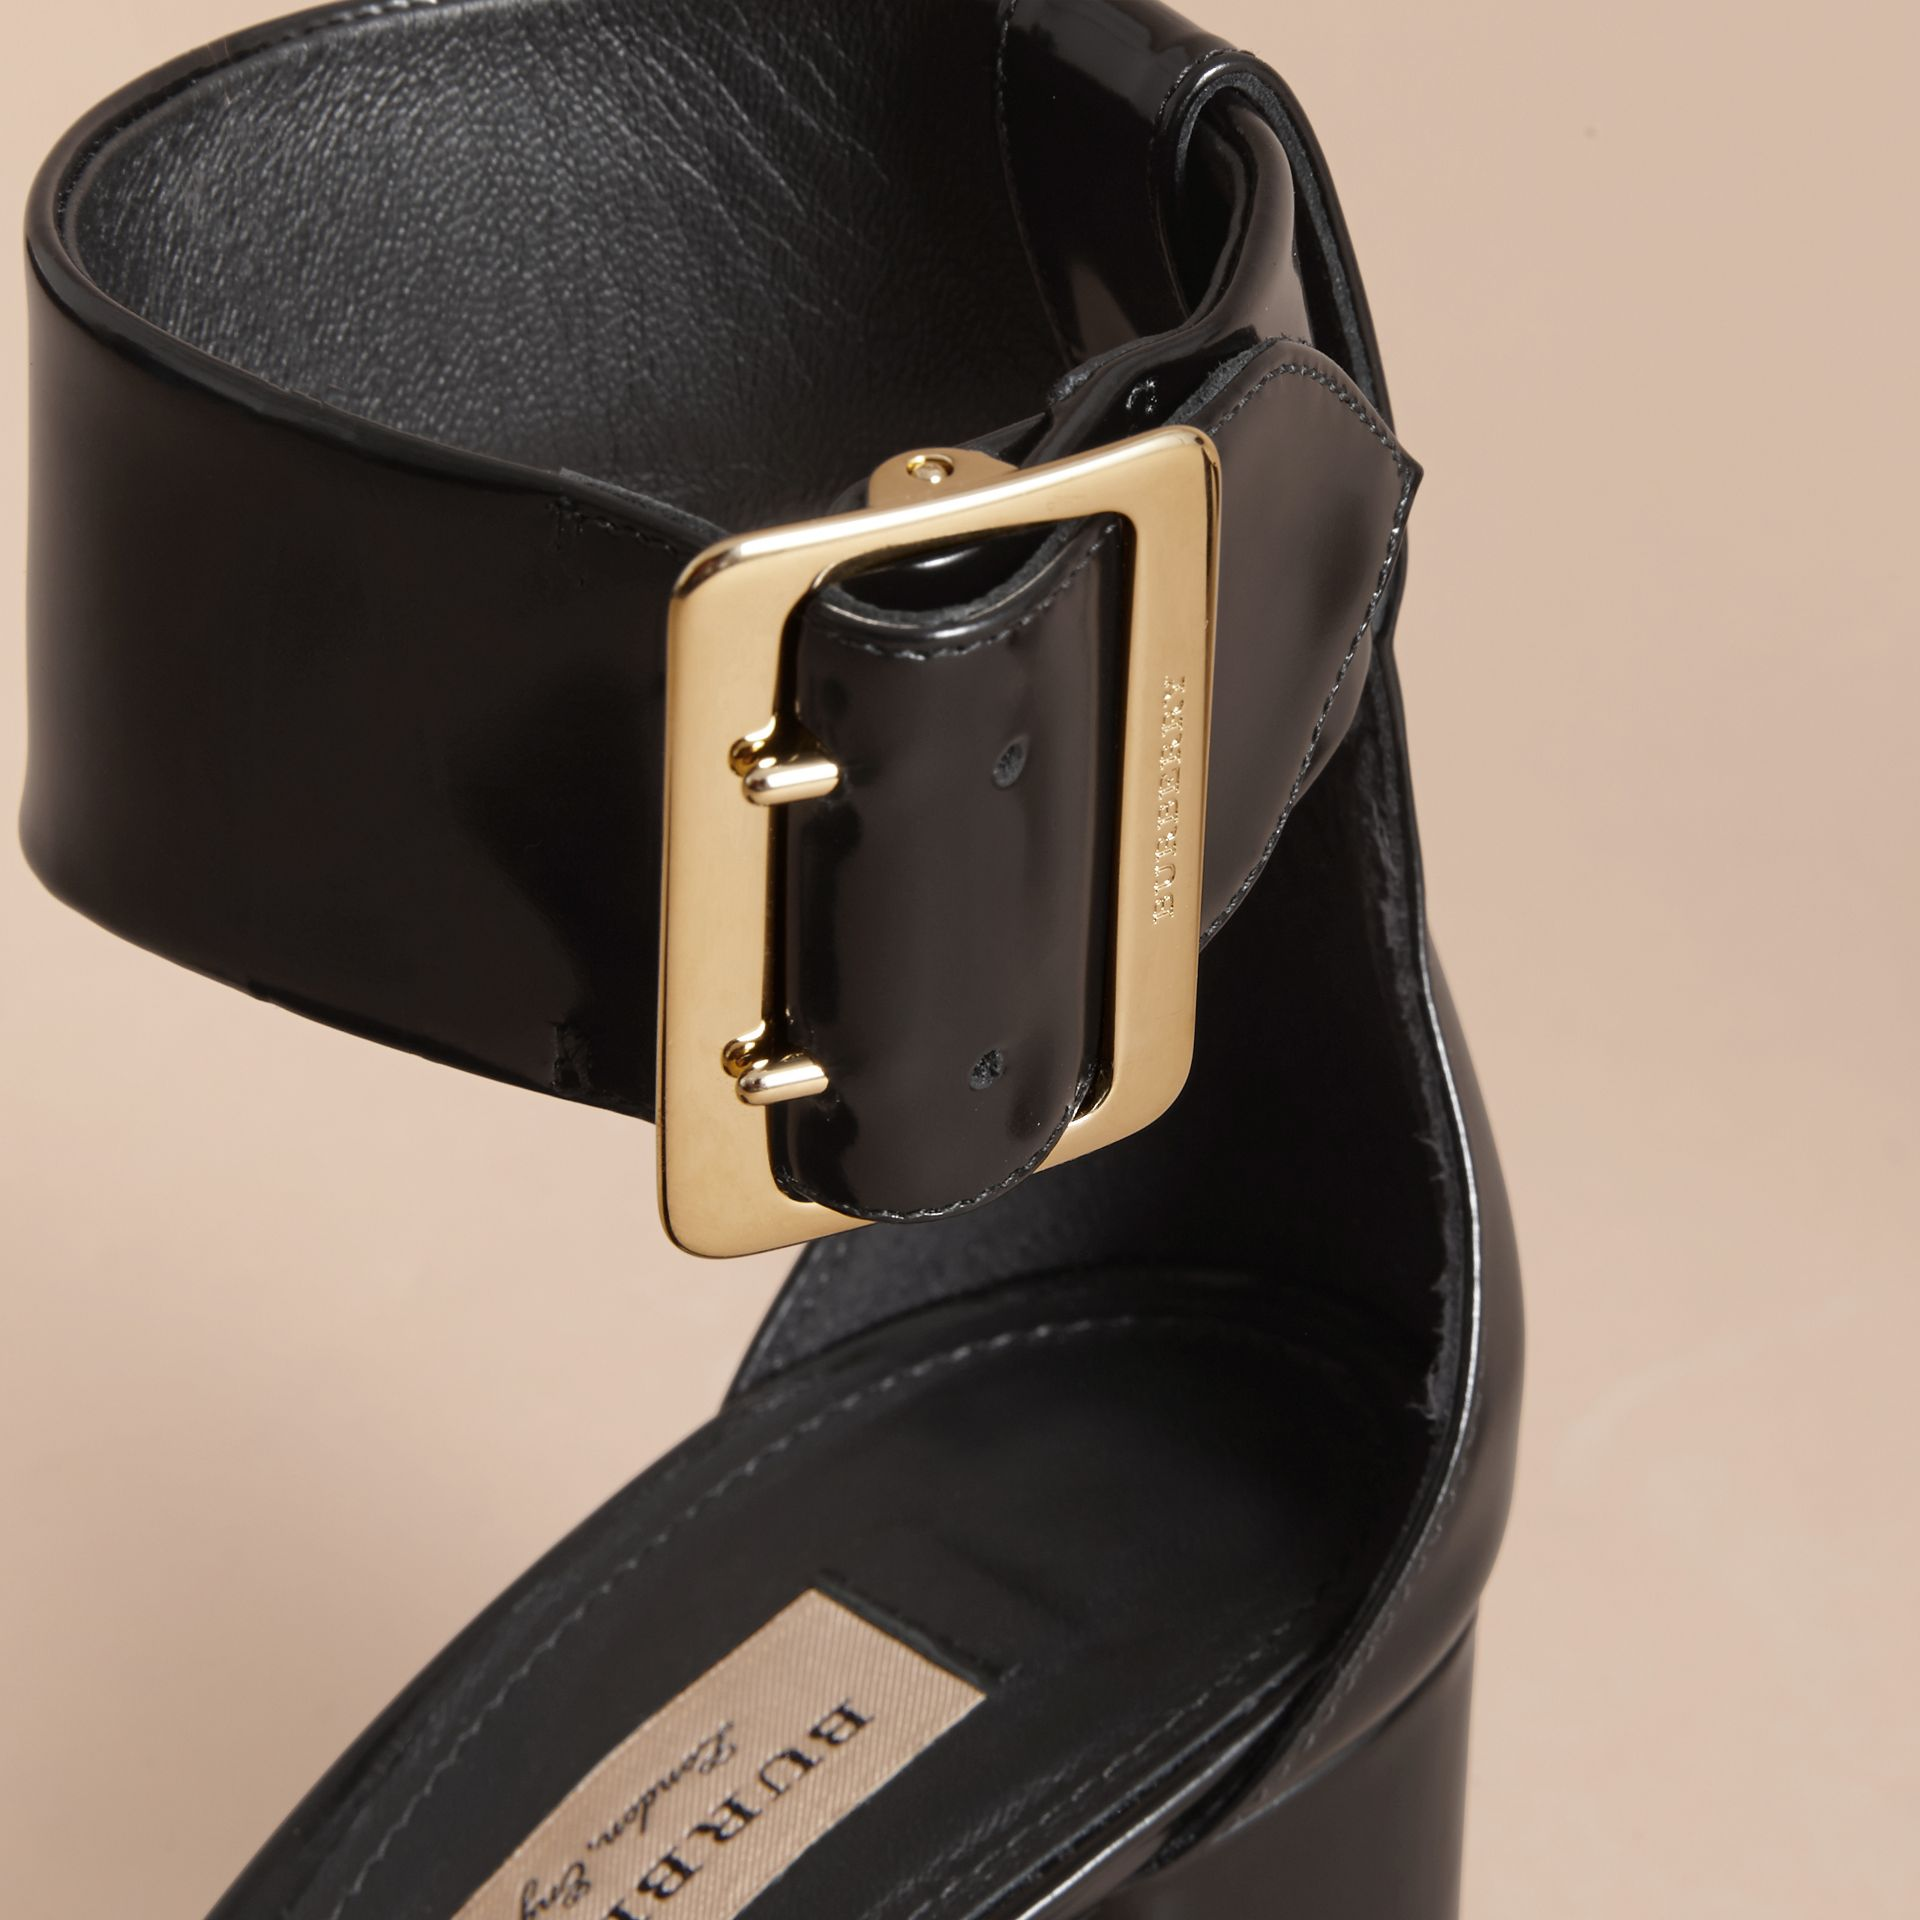 Buckle Detail Patent Leather Sandals in Black - Women | Burberry United States - gallery image 2